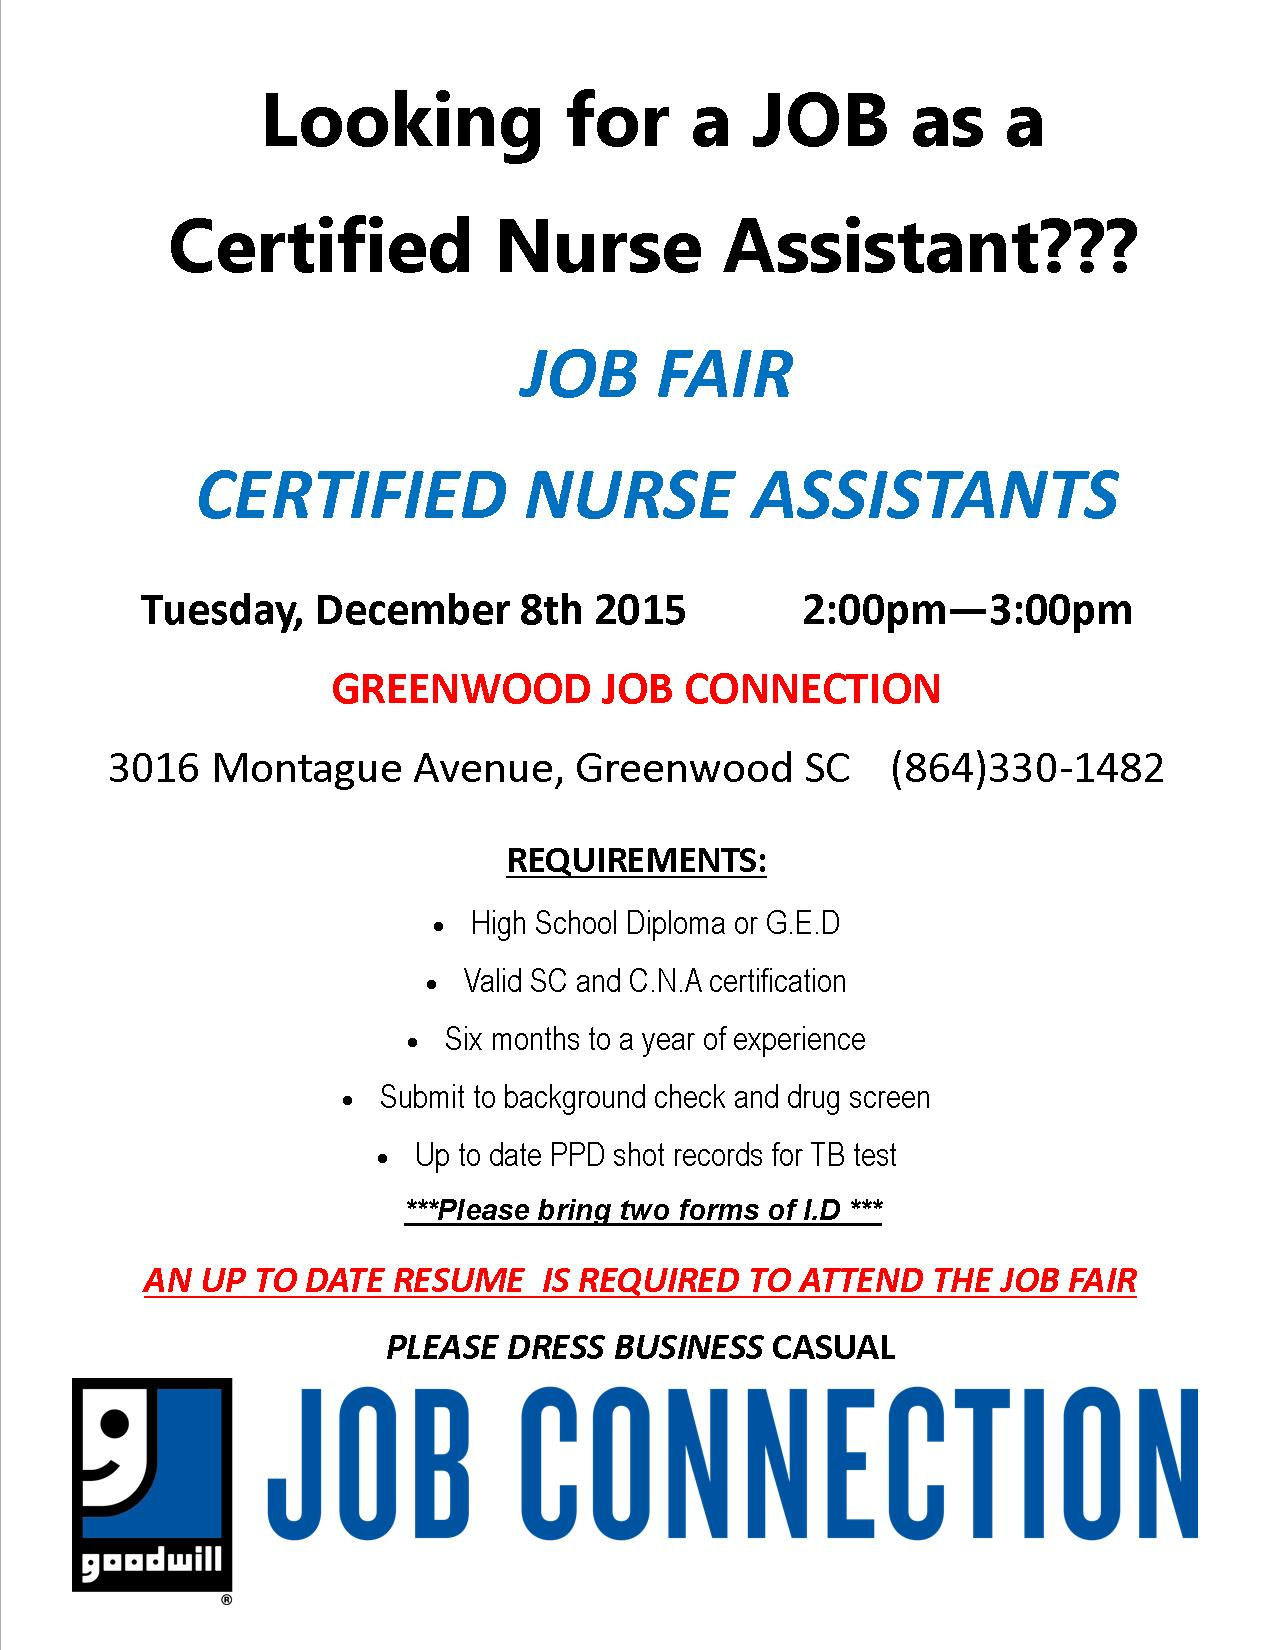 Certified Nurse Assistant Job Fair Greenwood Calendar